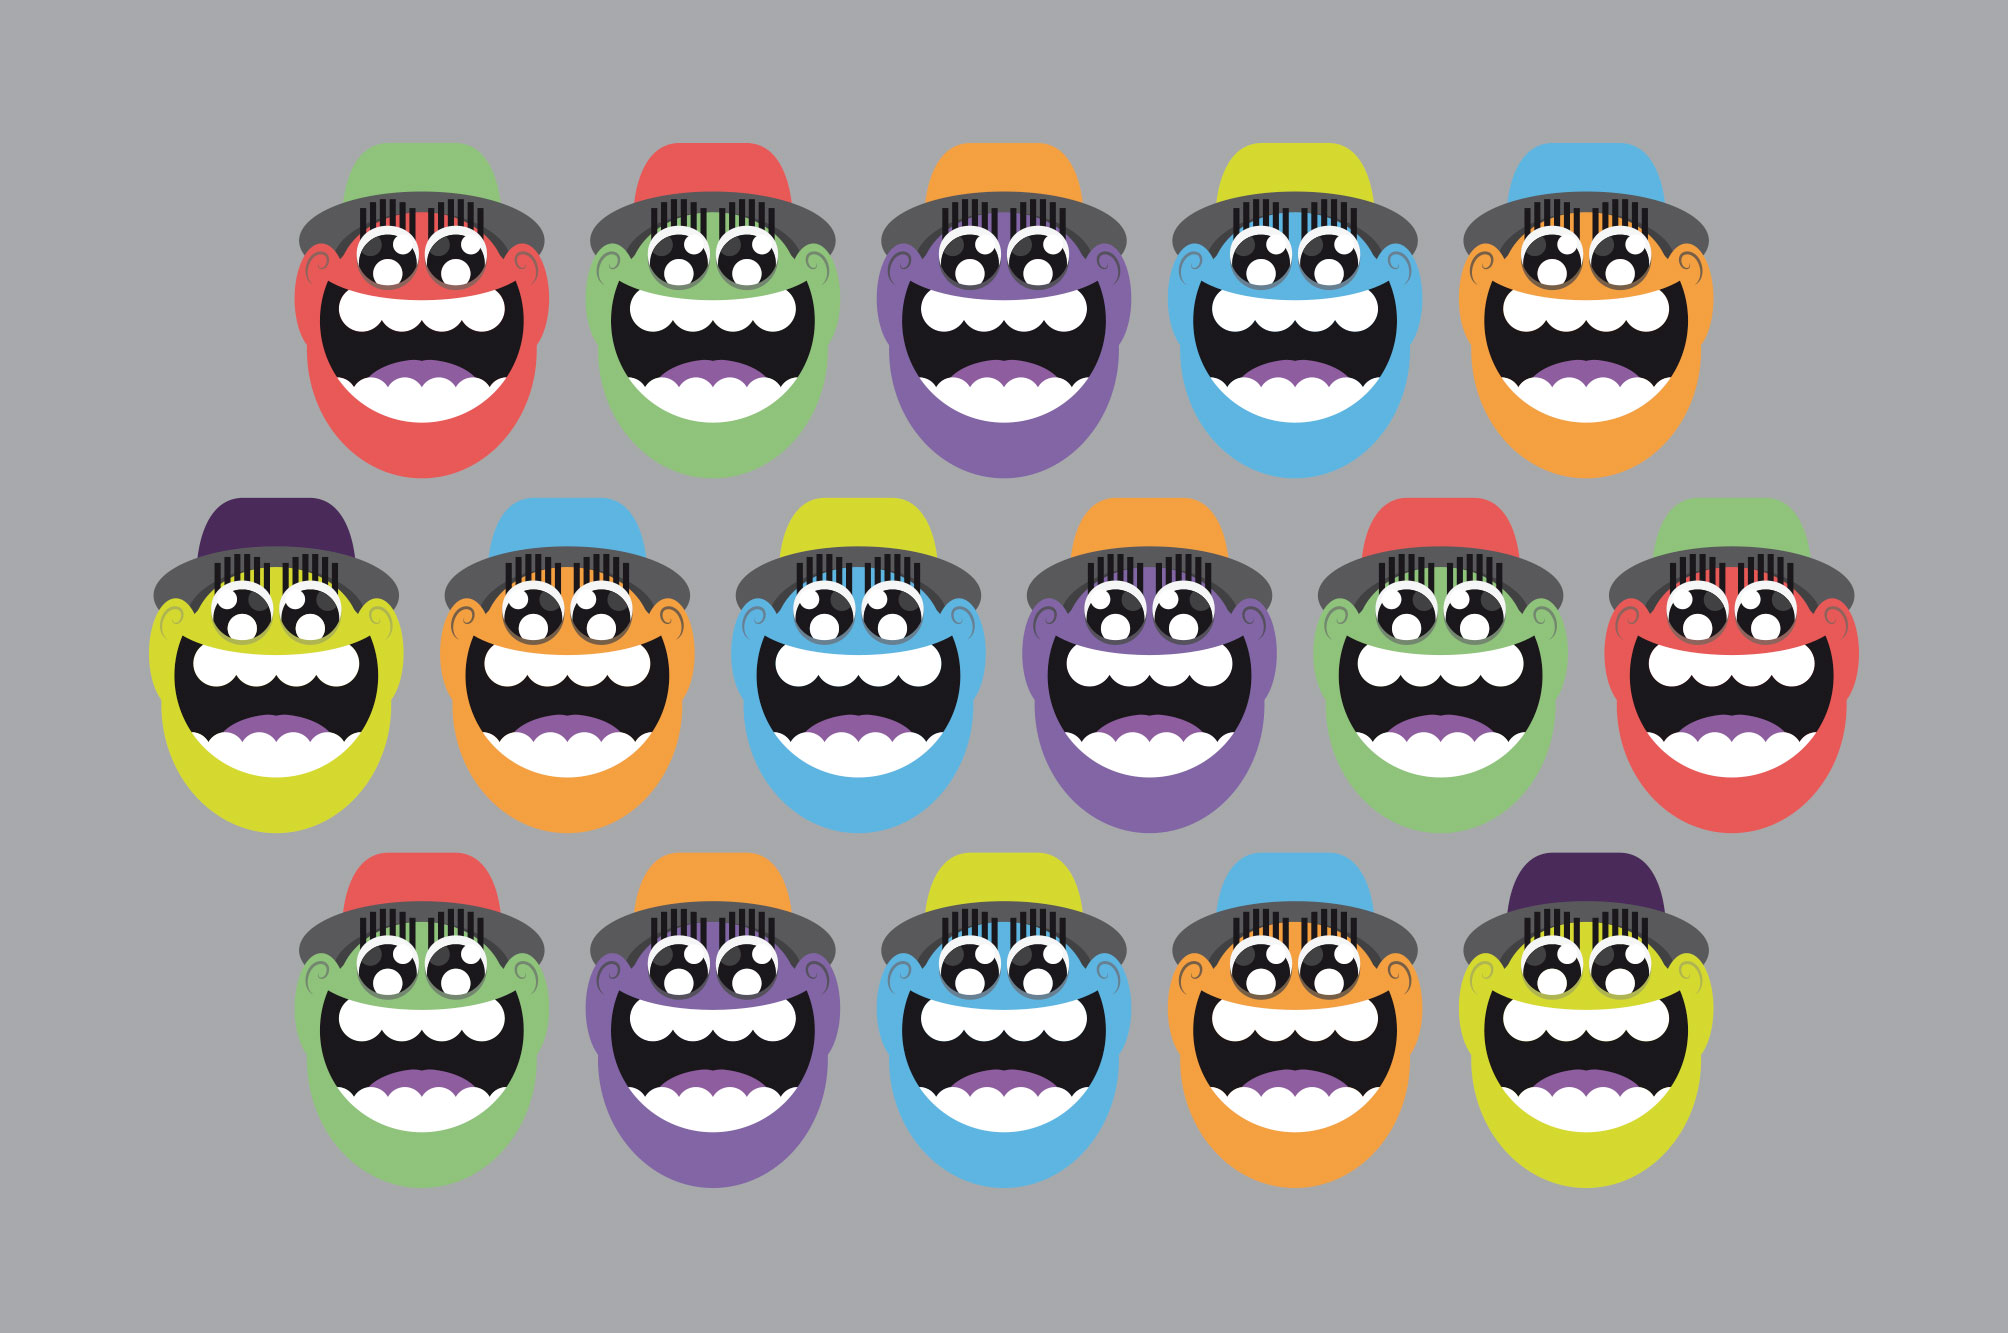 WeDesign yo illustration faces in a line